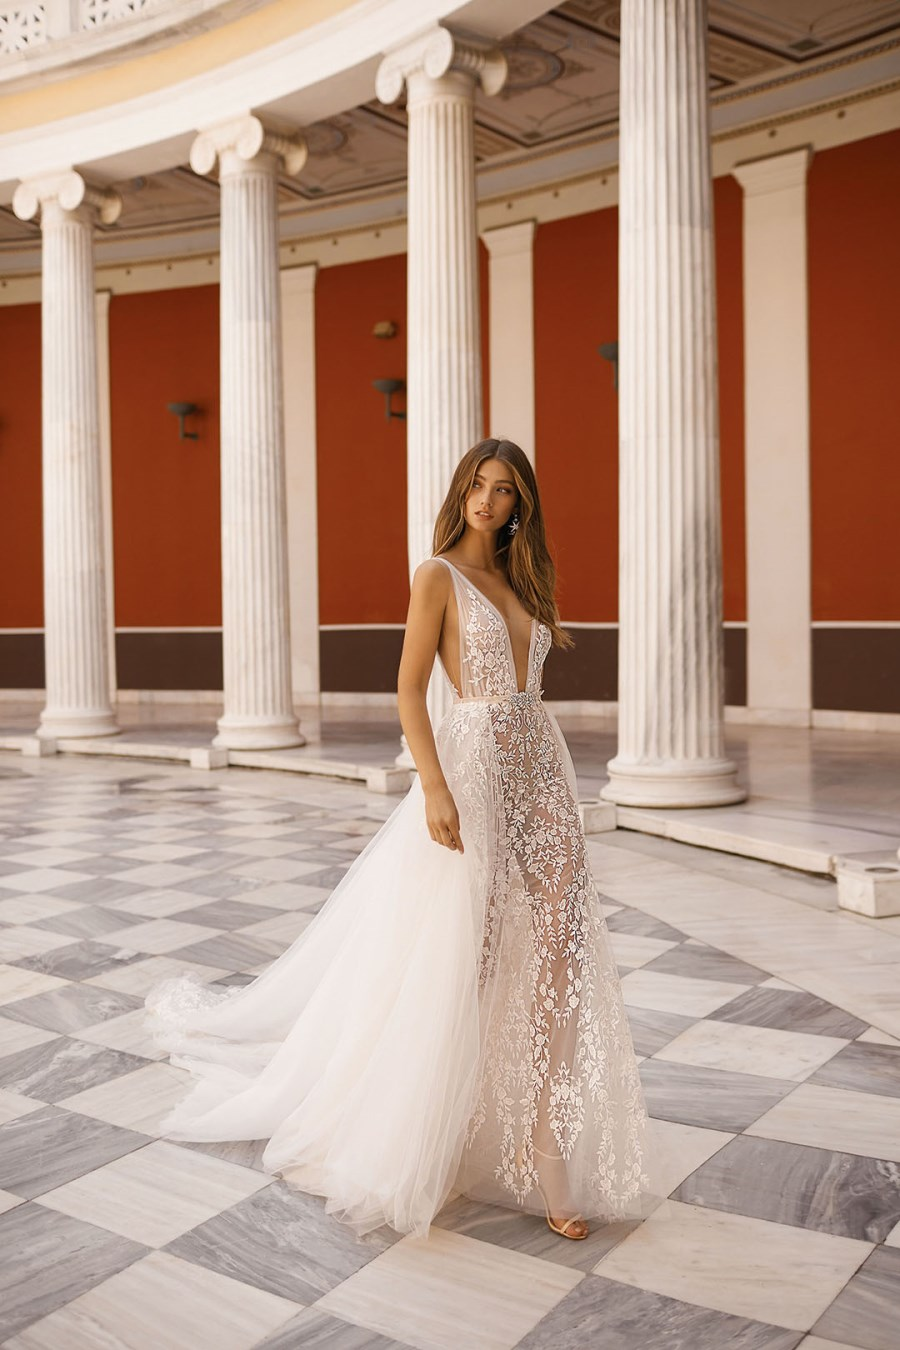 berta-wedding-dress-2019-1 (9)_1